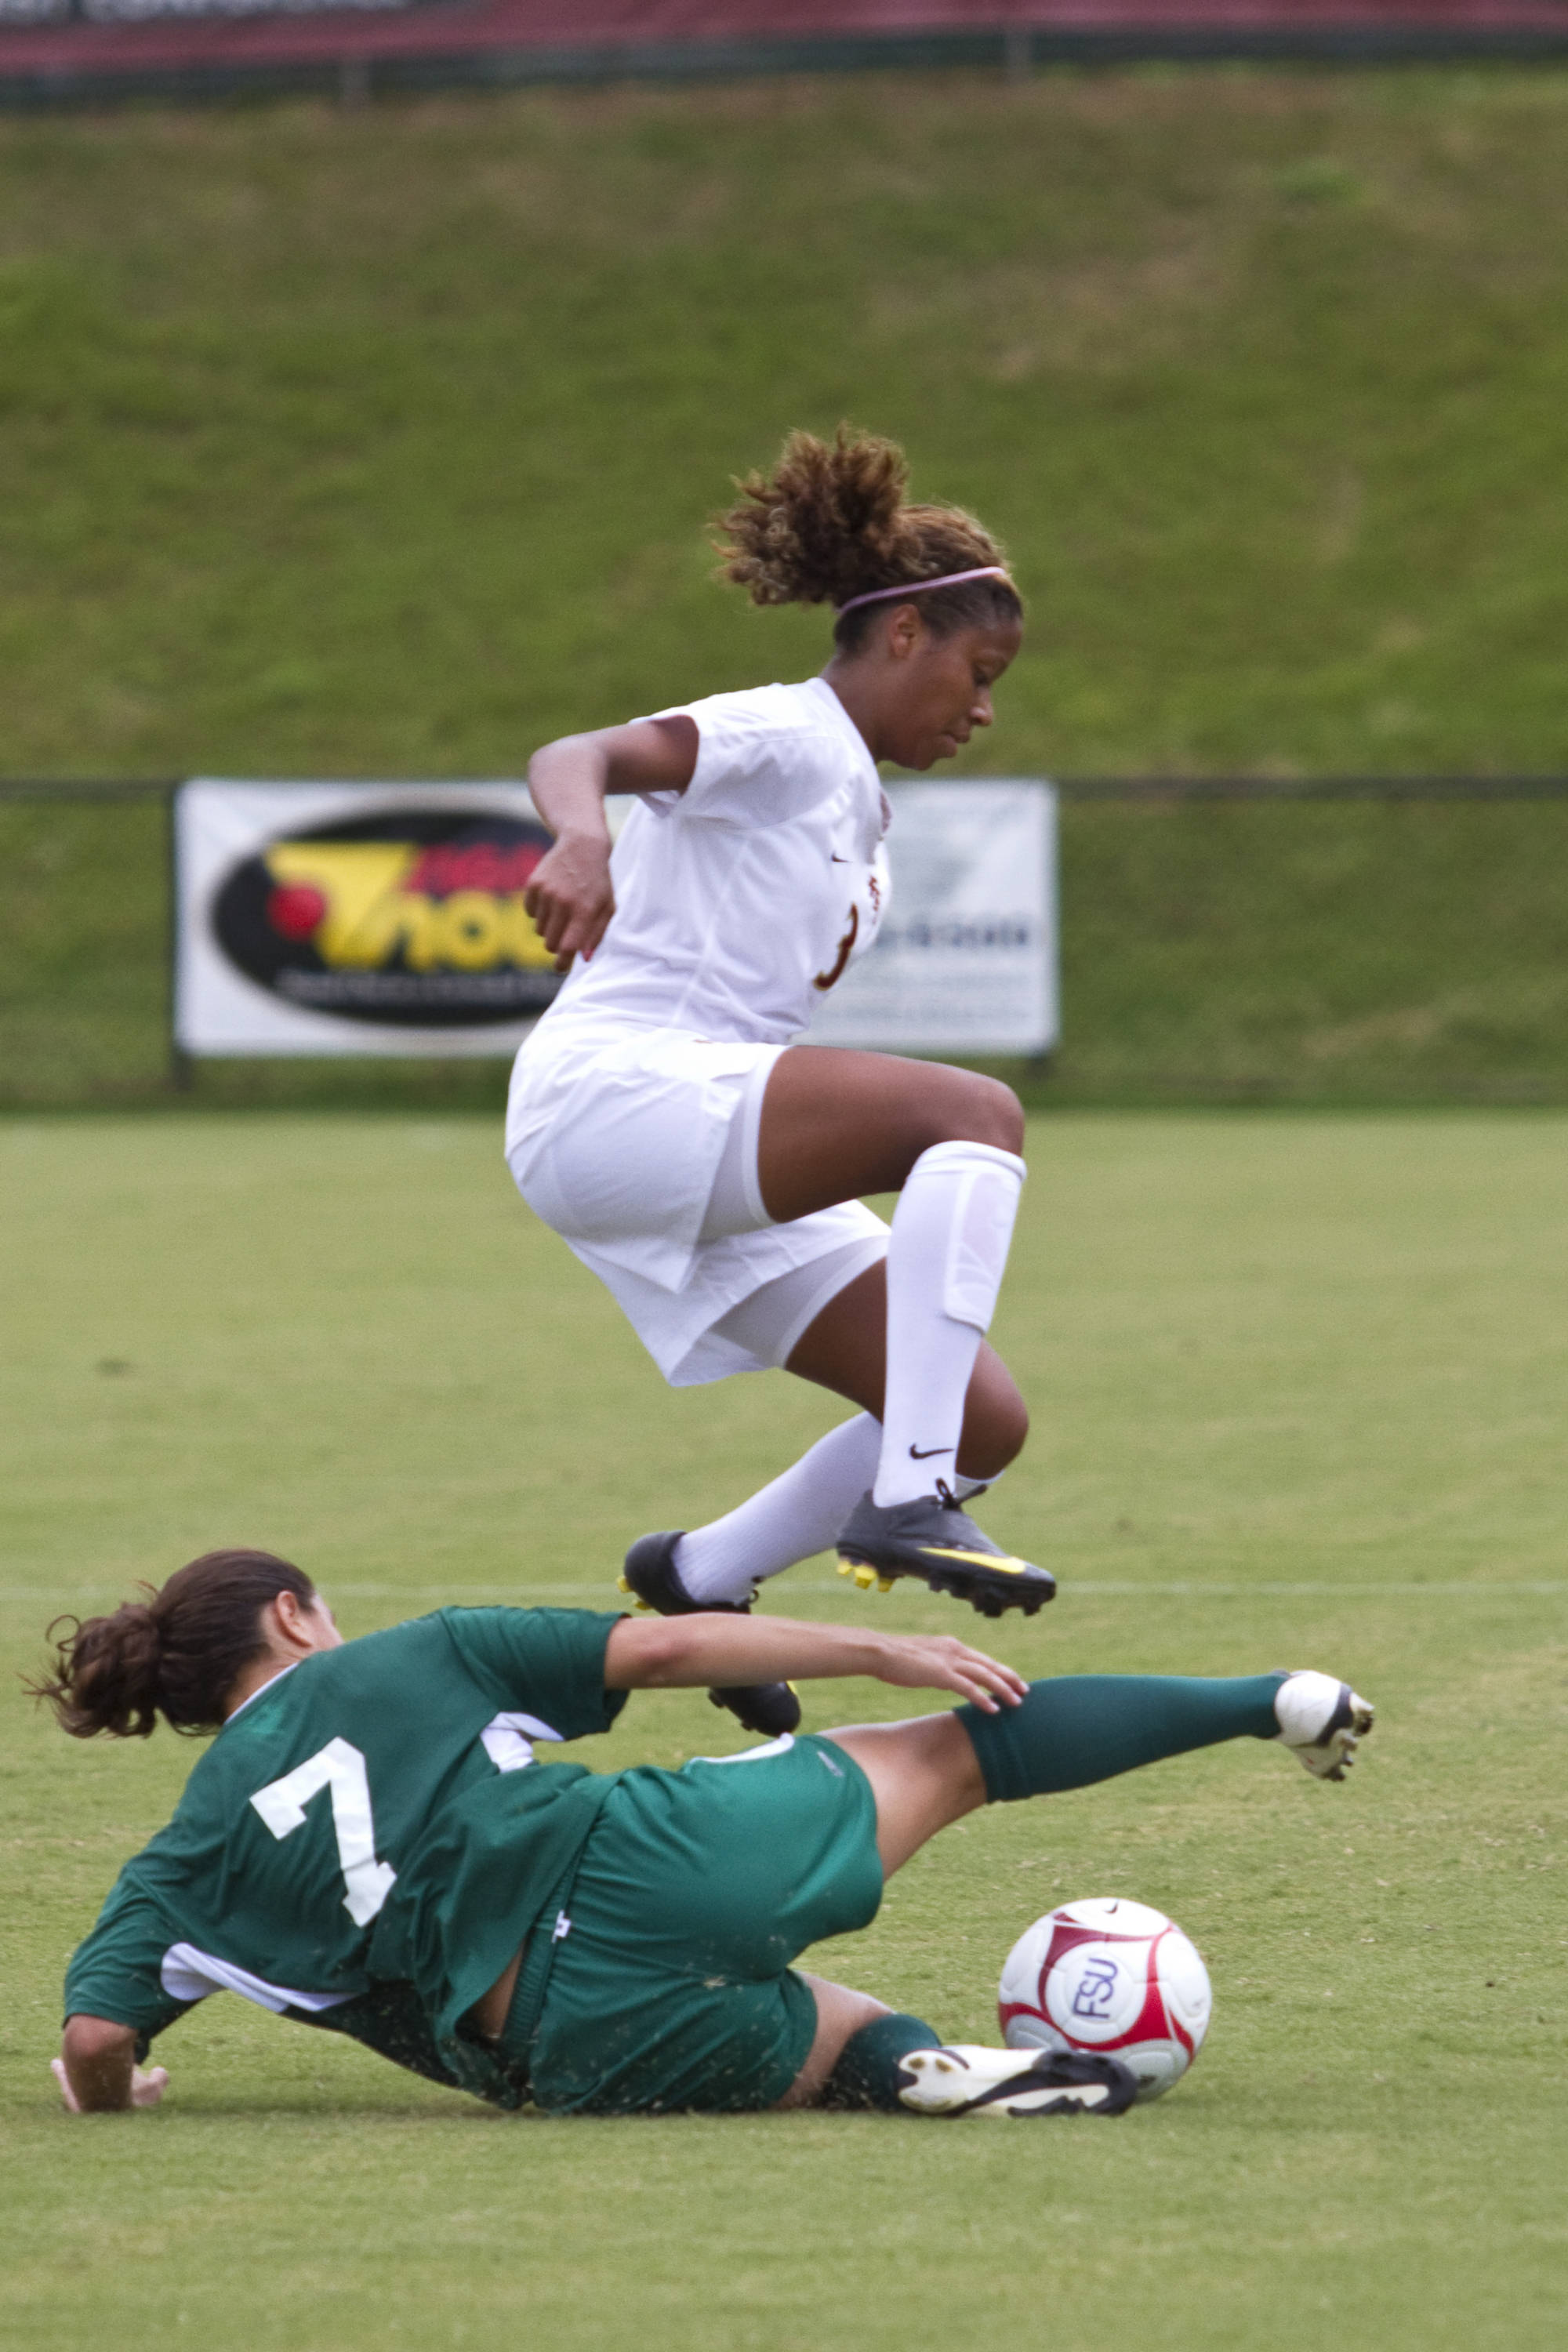 Casey Short (3) jumps as a Stetson player slide tackles her.